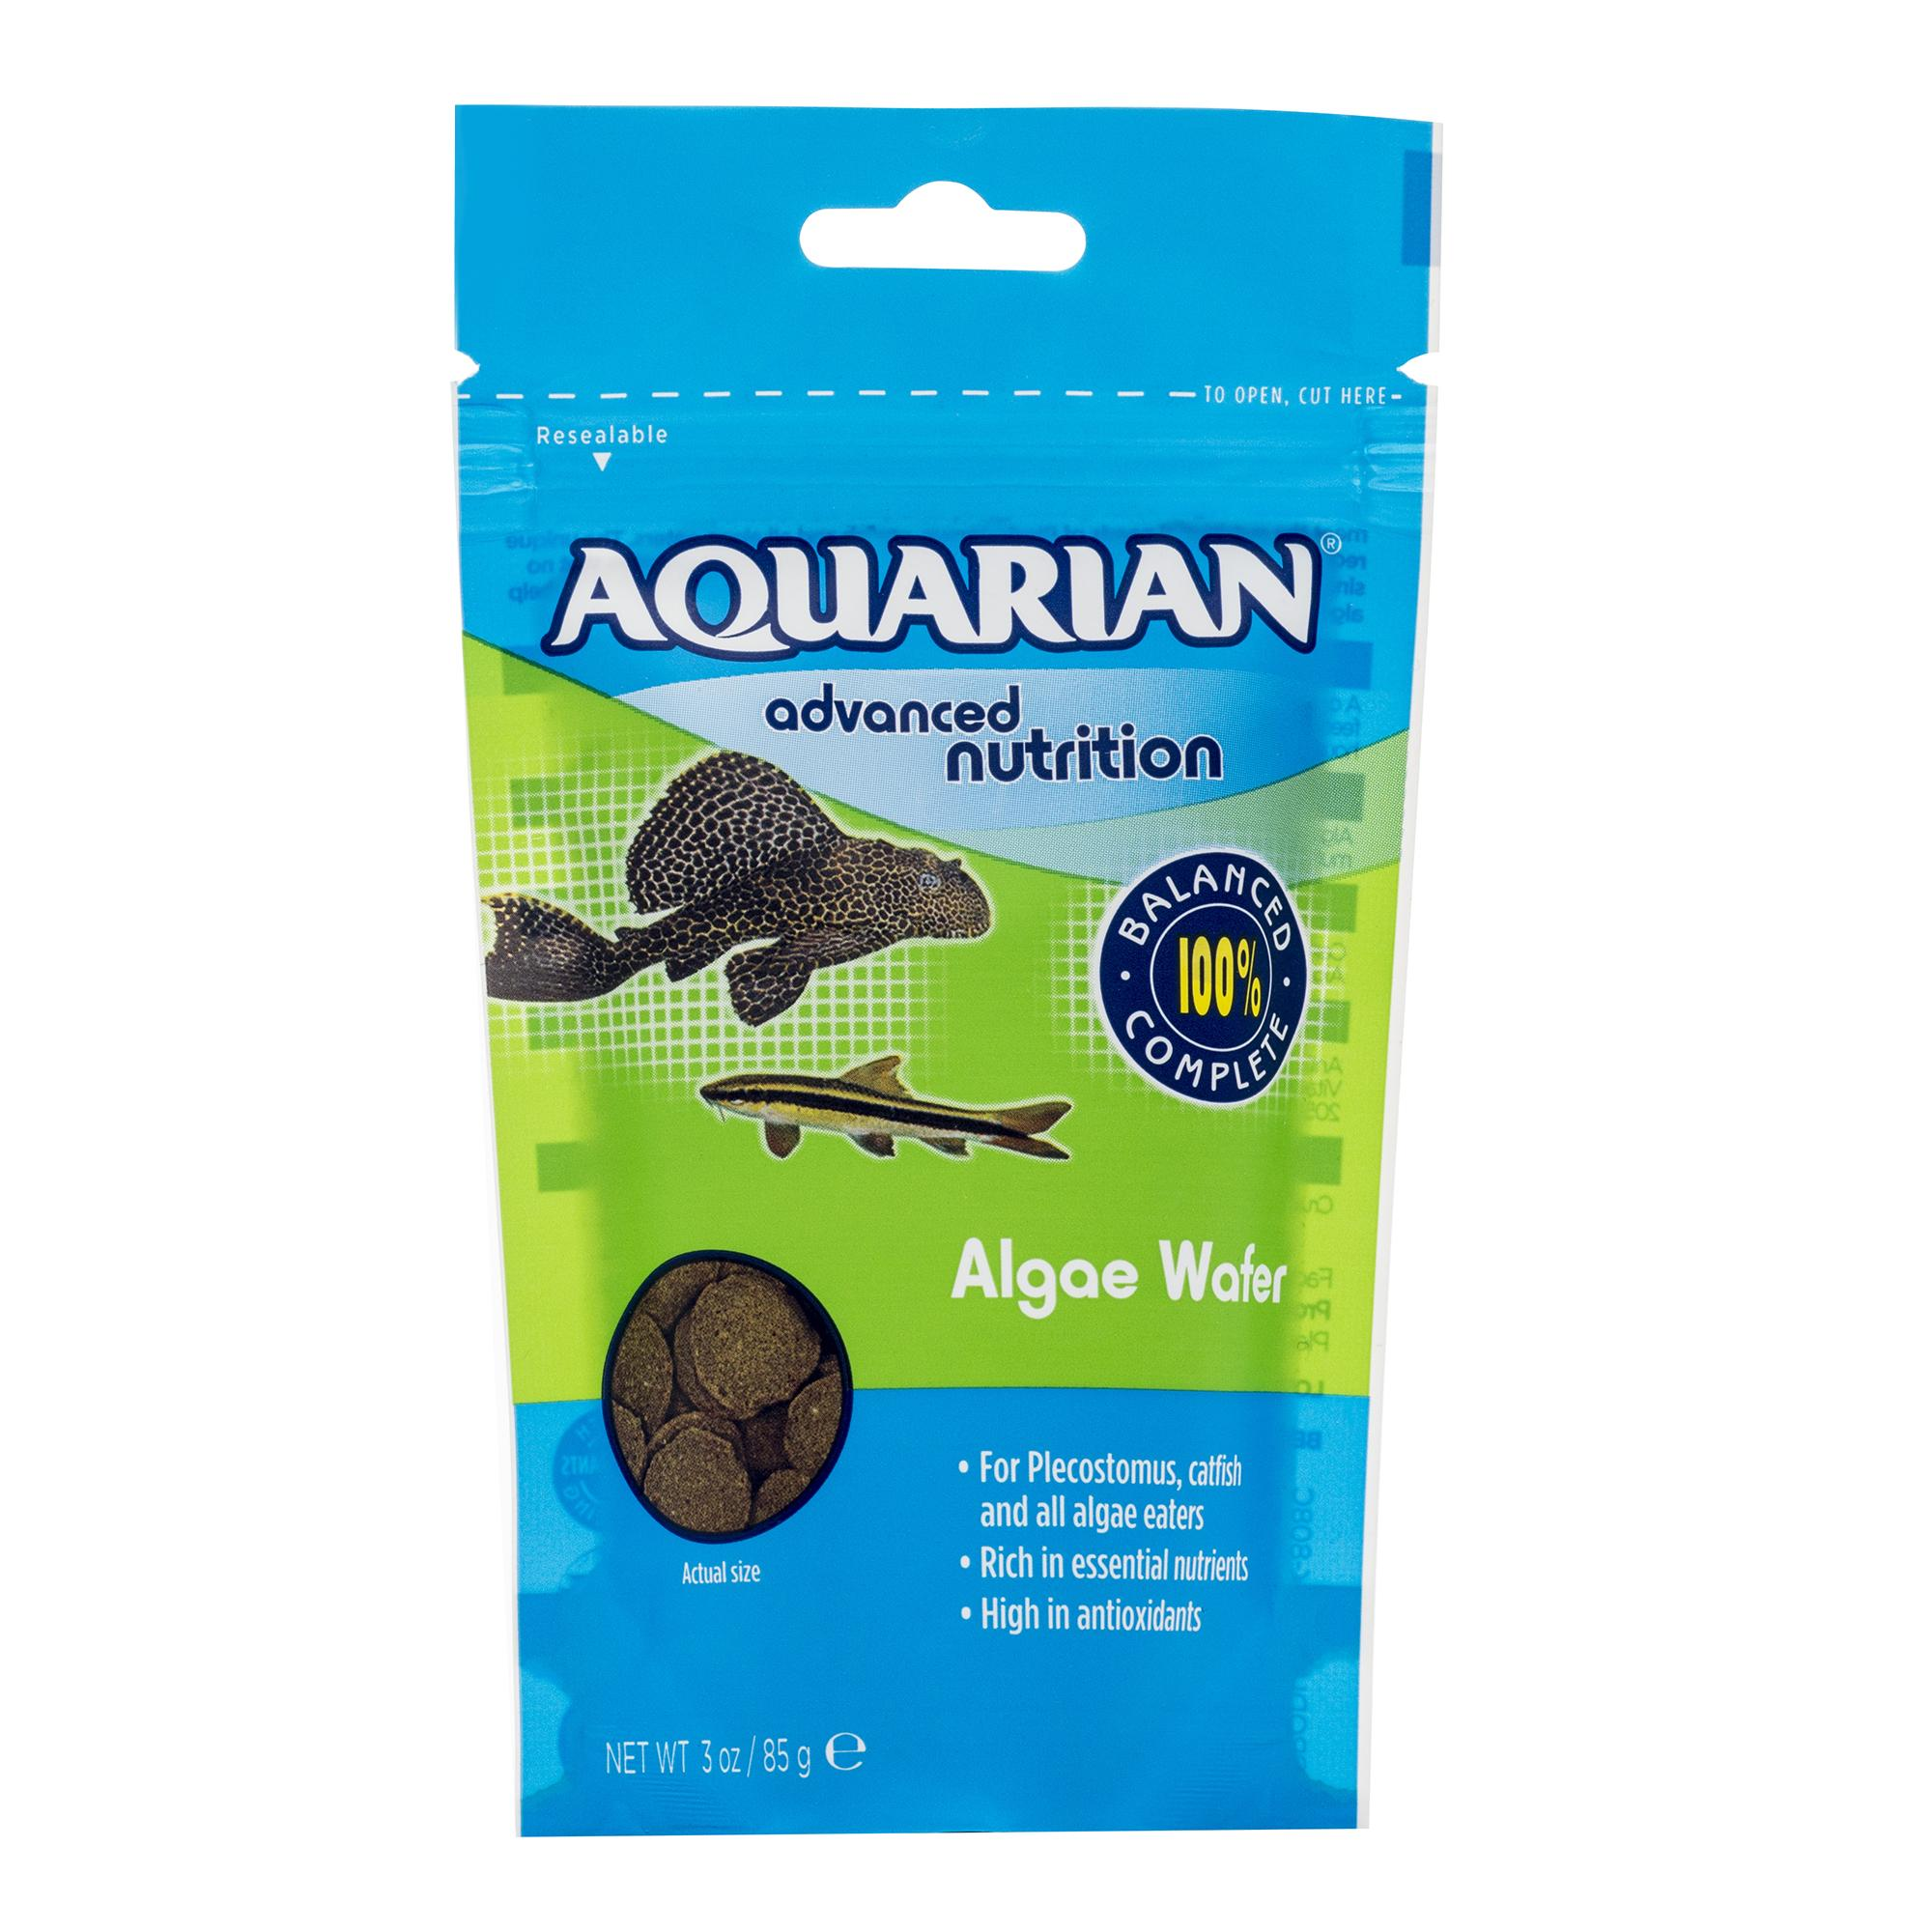 A package of AQUARIAN Algae Wafers